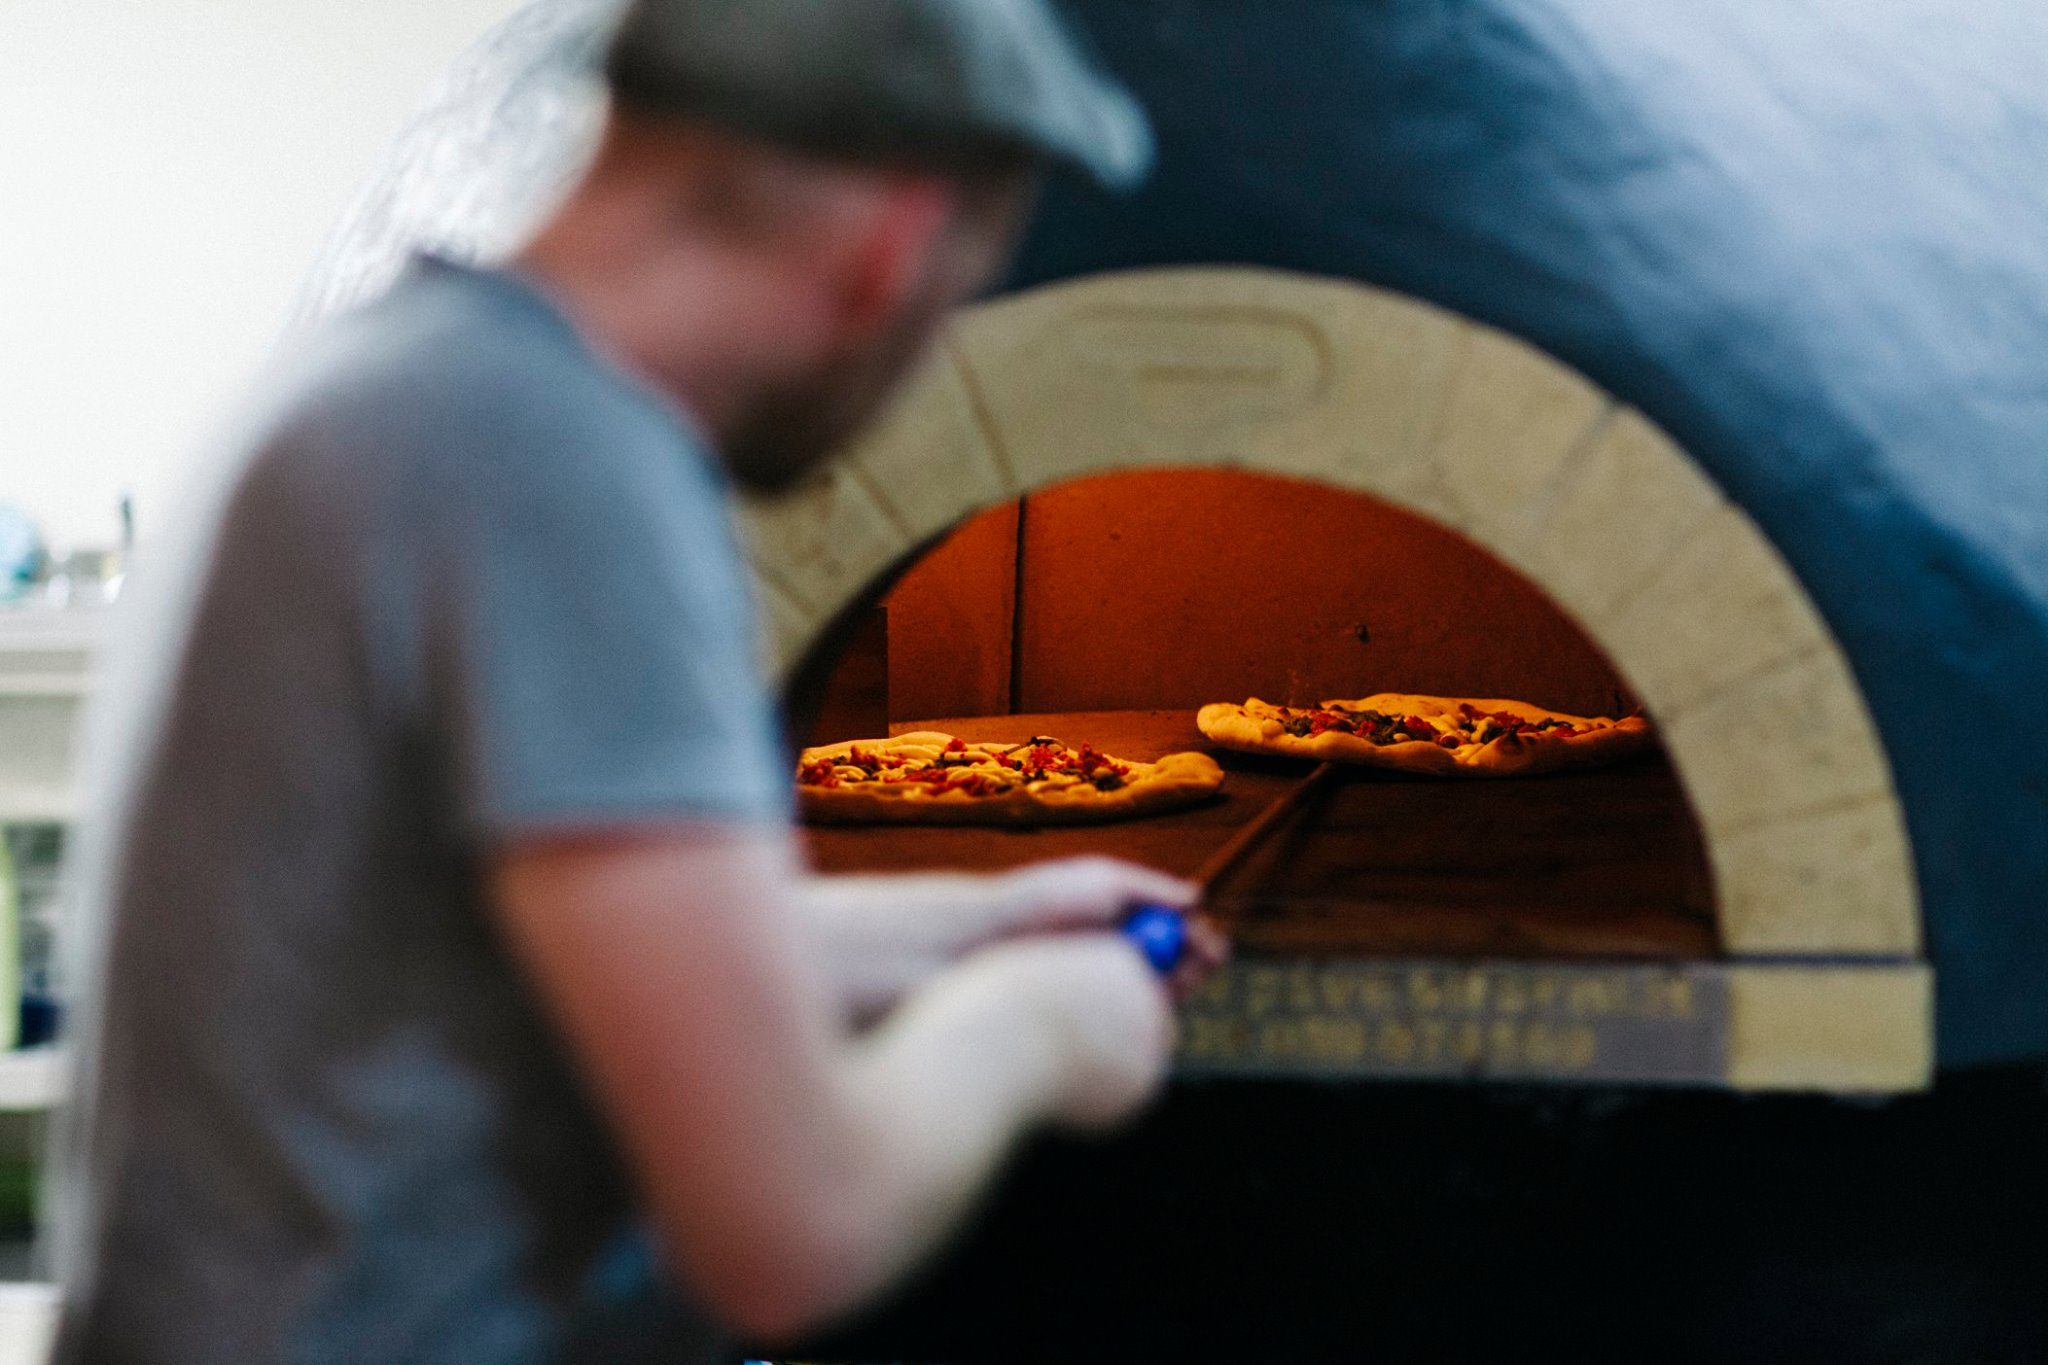 A man cooking Neapolitan pizzas in the wood-fired pizza oven at Rudy's Pizza in Ancoats, Manchester